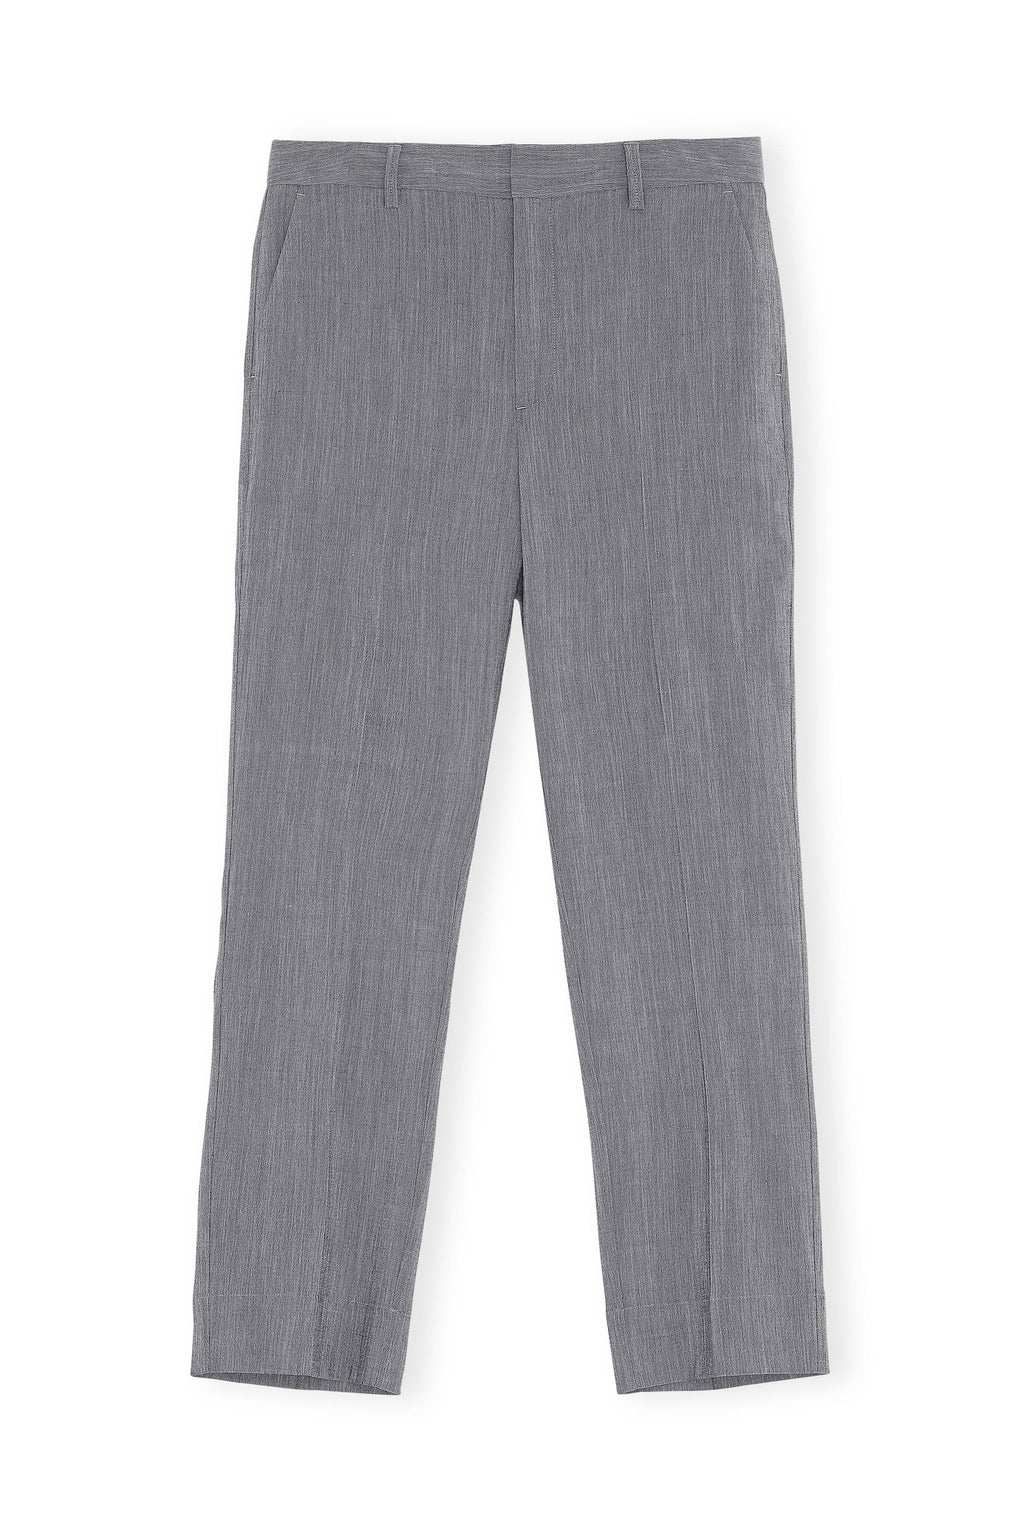 Melange Suiting Pants